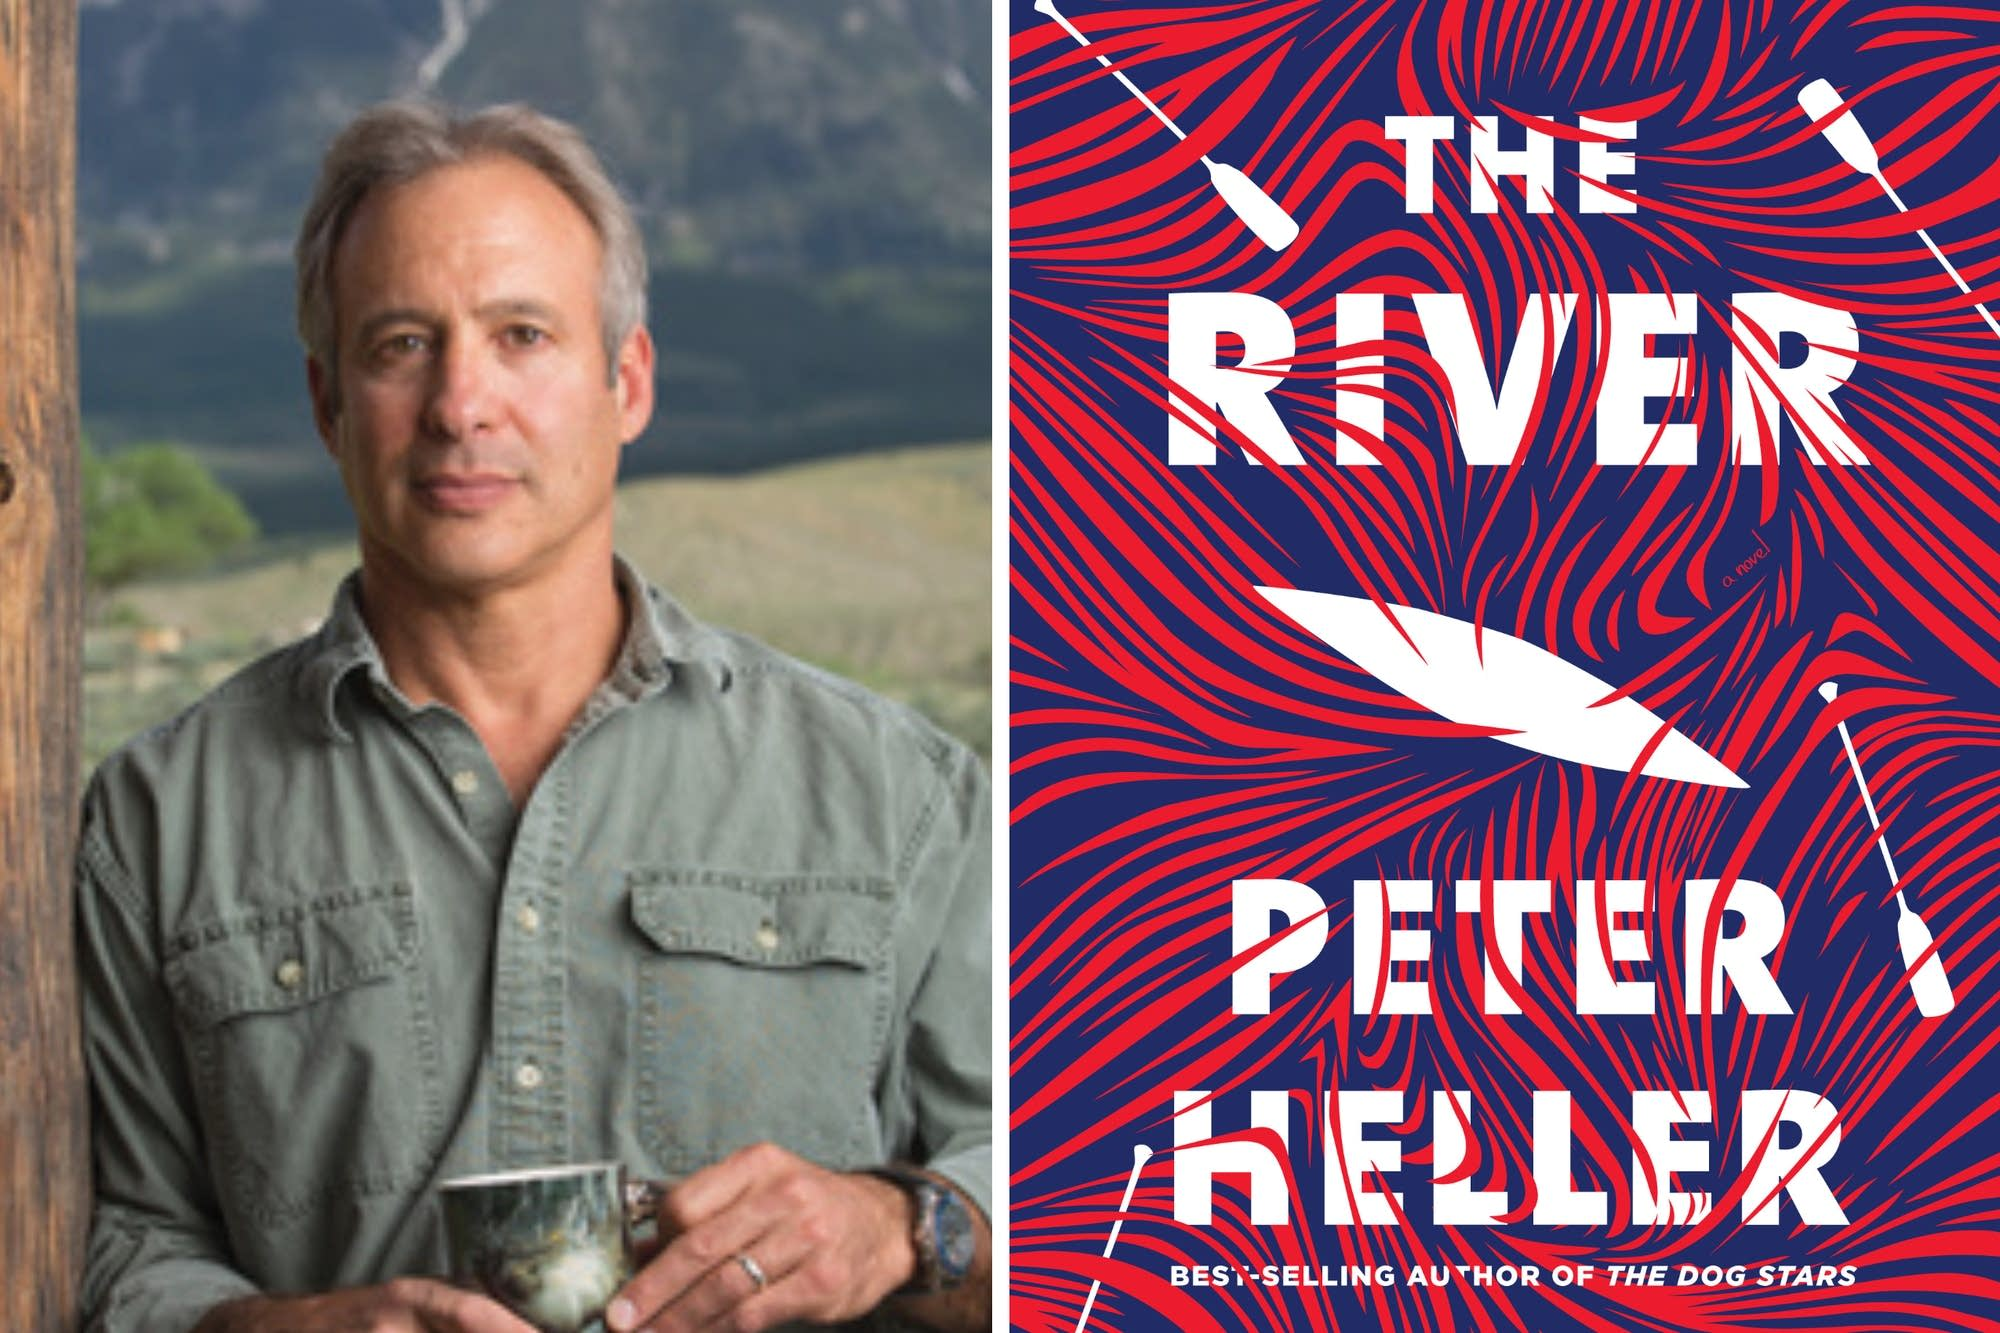 Peter Heller talks about his latest novel, 'The River.'